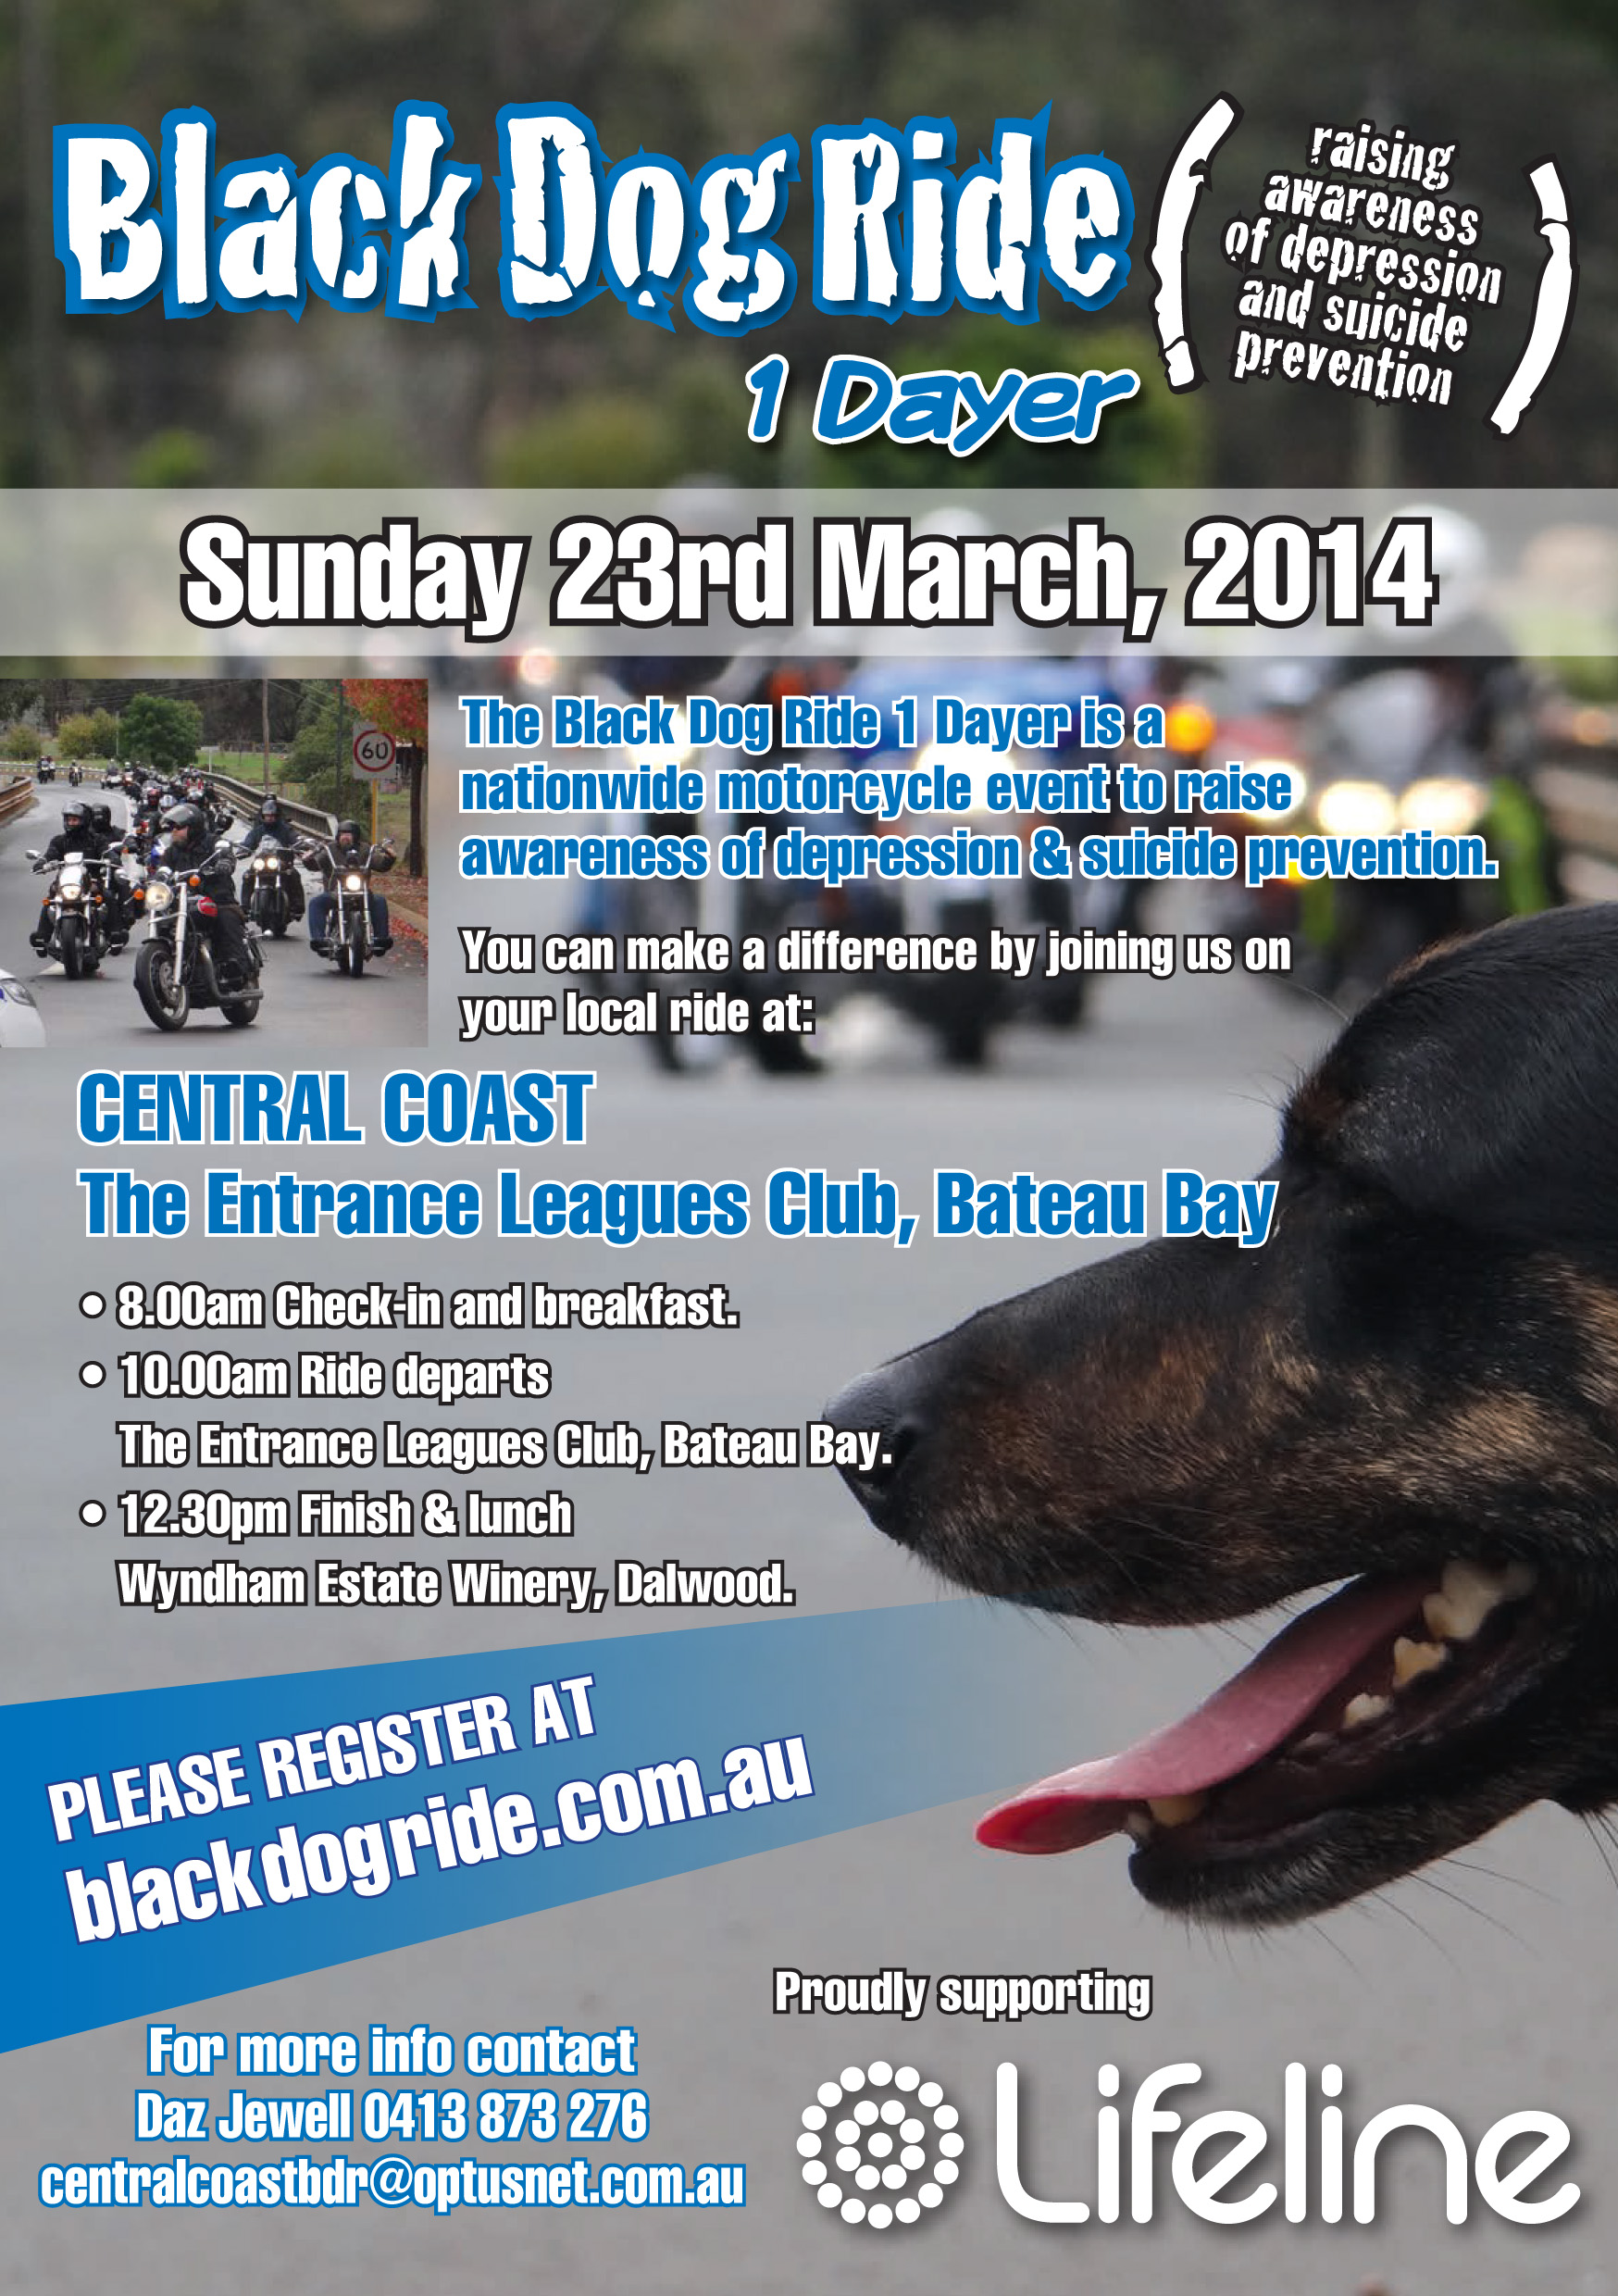 Black Dog 2014 Black-dog-ride-2014-1-dayer-central-coast-flyer